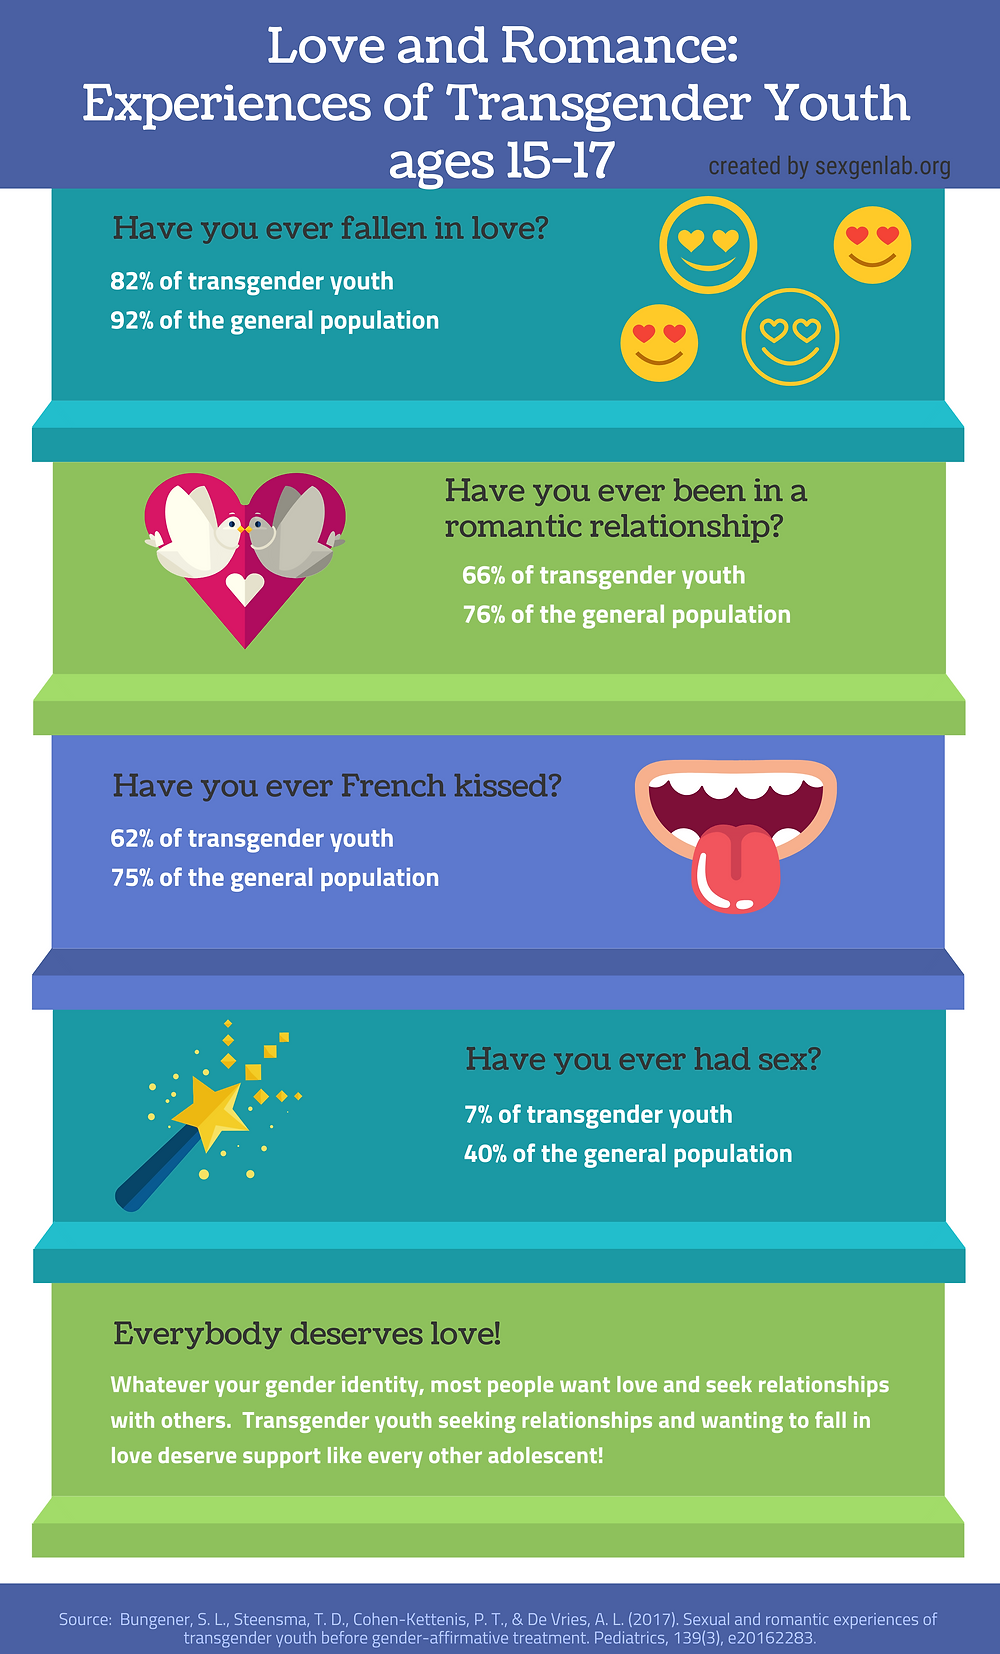 Infographic on Transgender Youth and experiences with love and romance